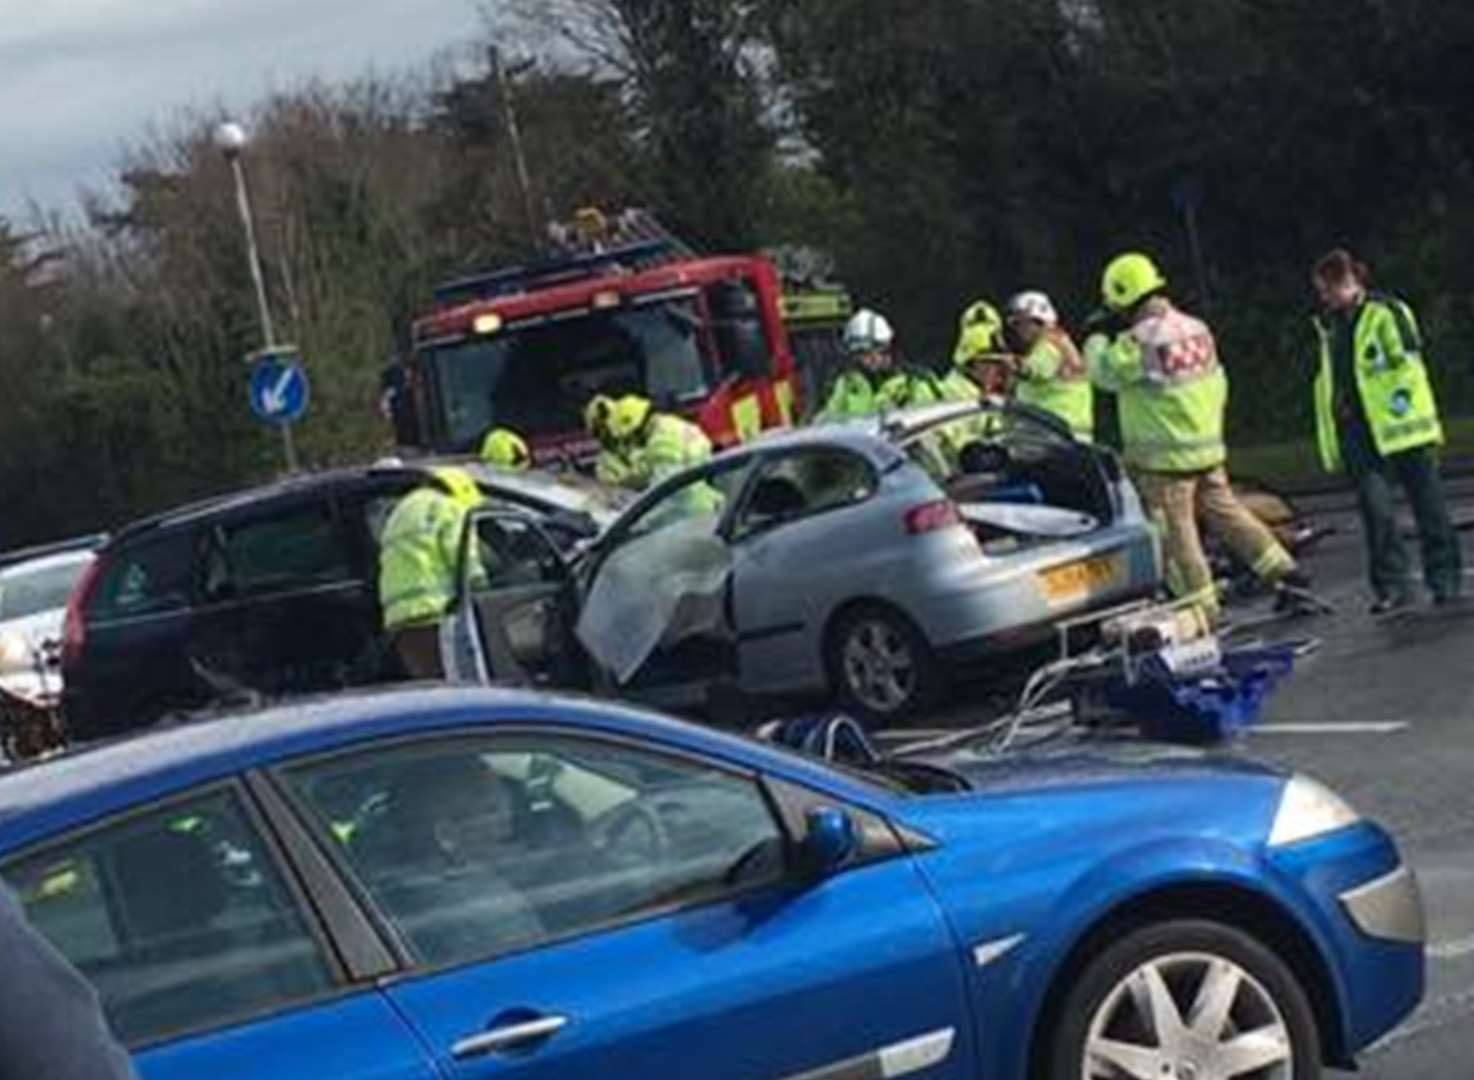 Two in hospital with serious injuries after crash